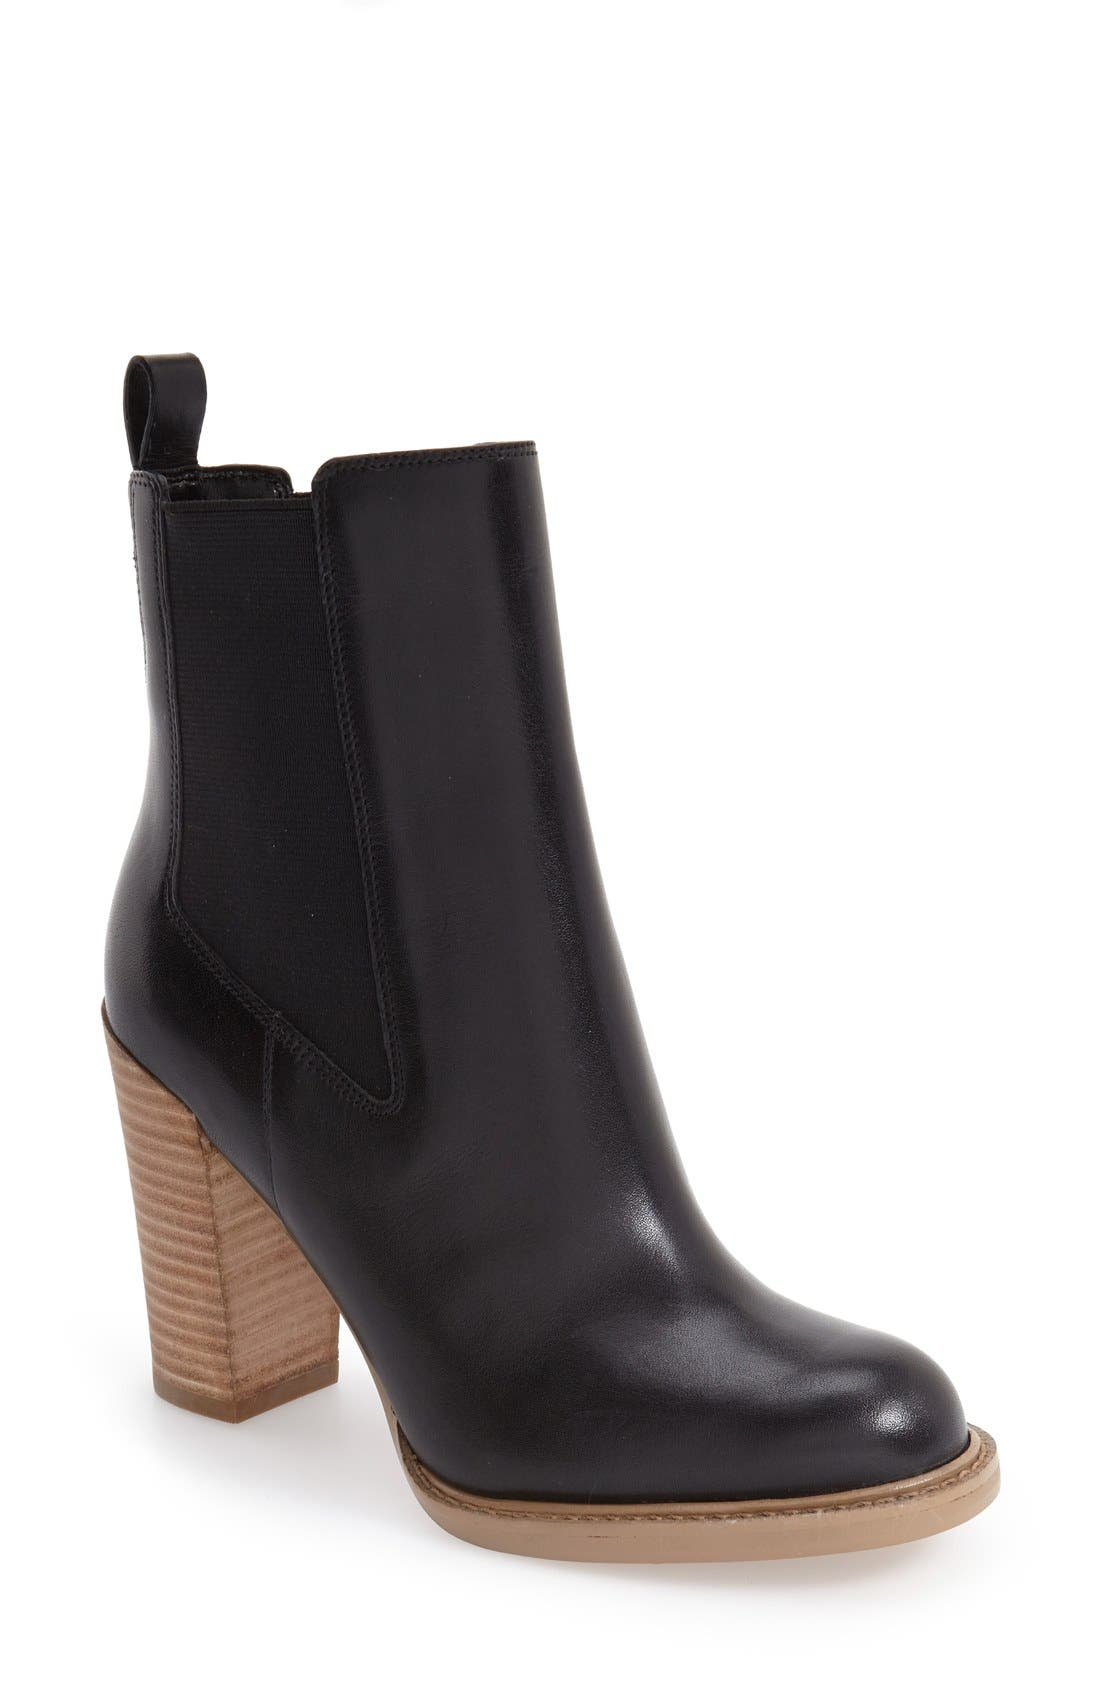 Alternate Image 1 Selected - Marc Fisher LTD 'Harley' Chelsea Boot (women)